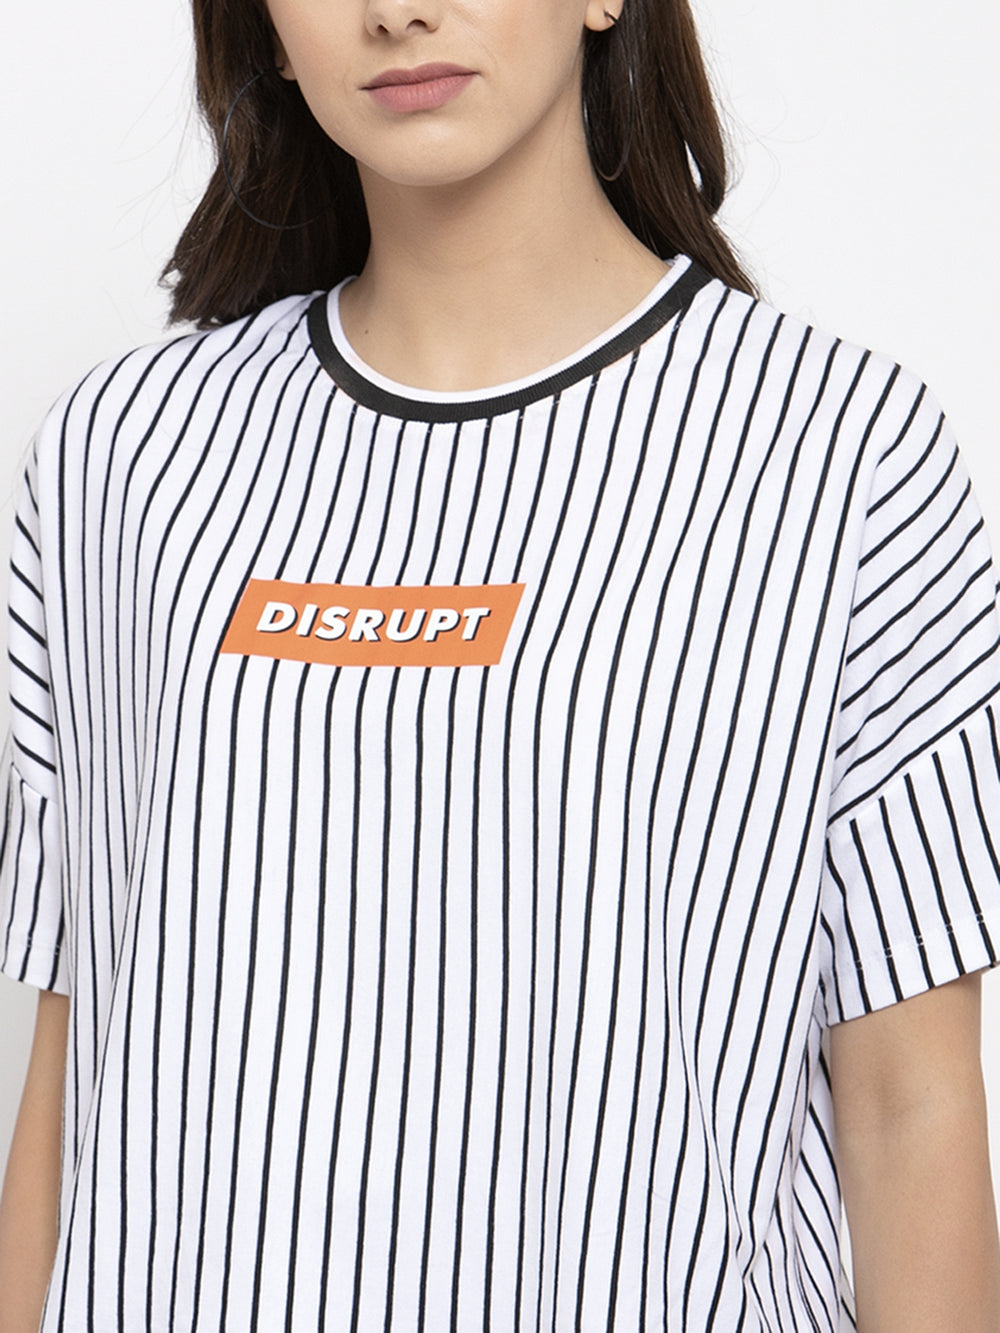 Disrupt Black and White Striped Boxy T-Shirt